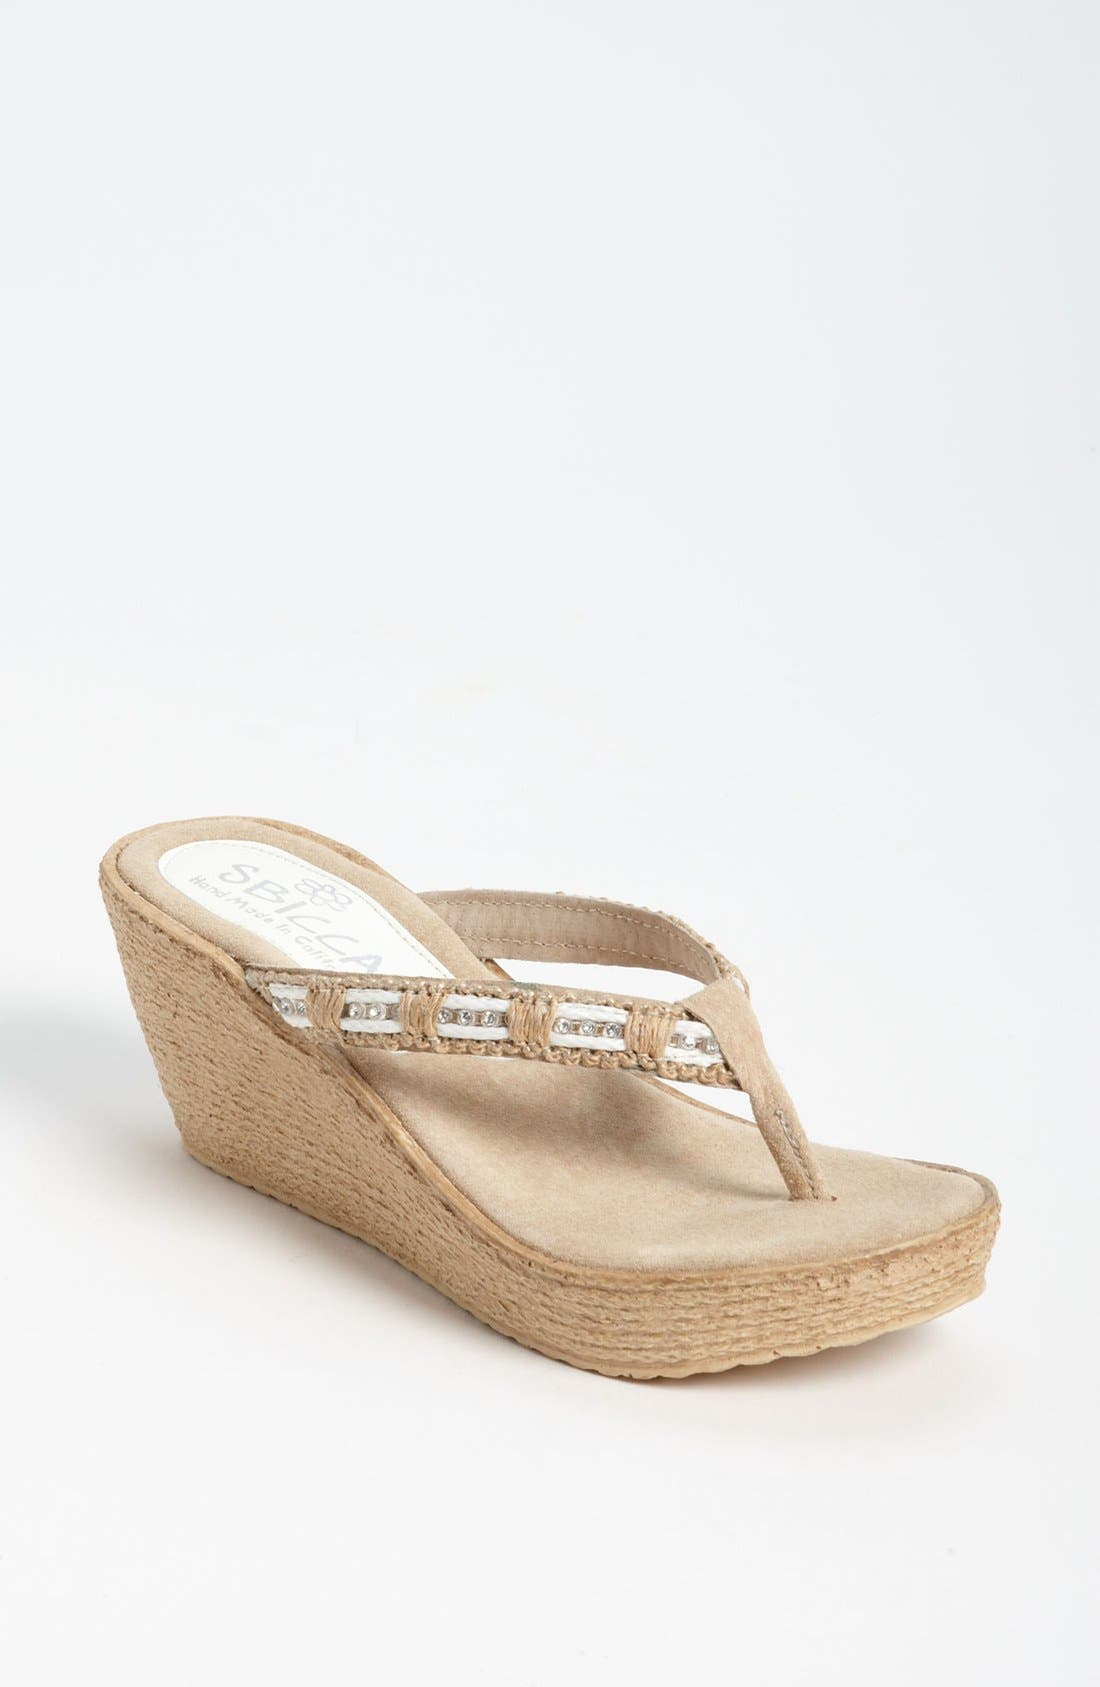 Alternate Image 1 Selected - Sbicca 'Cora' Wedge Sandal